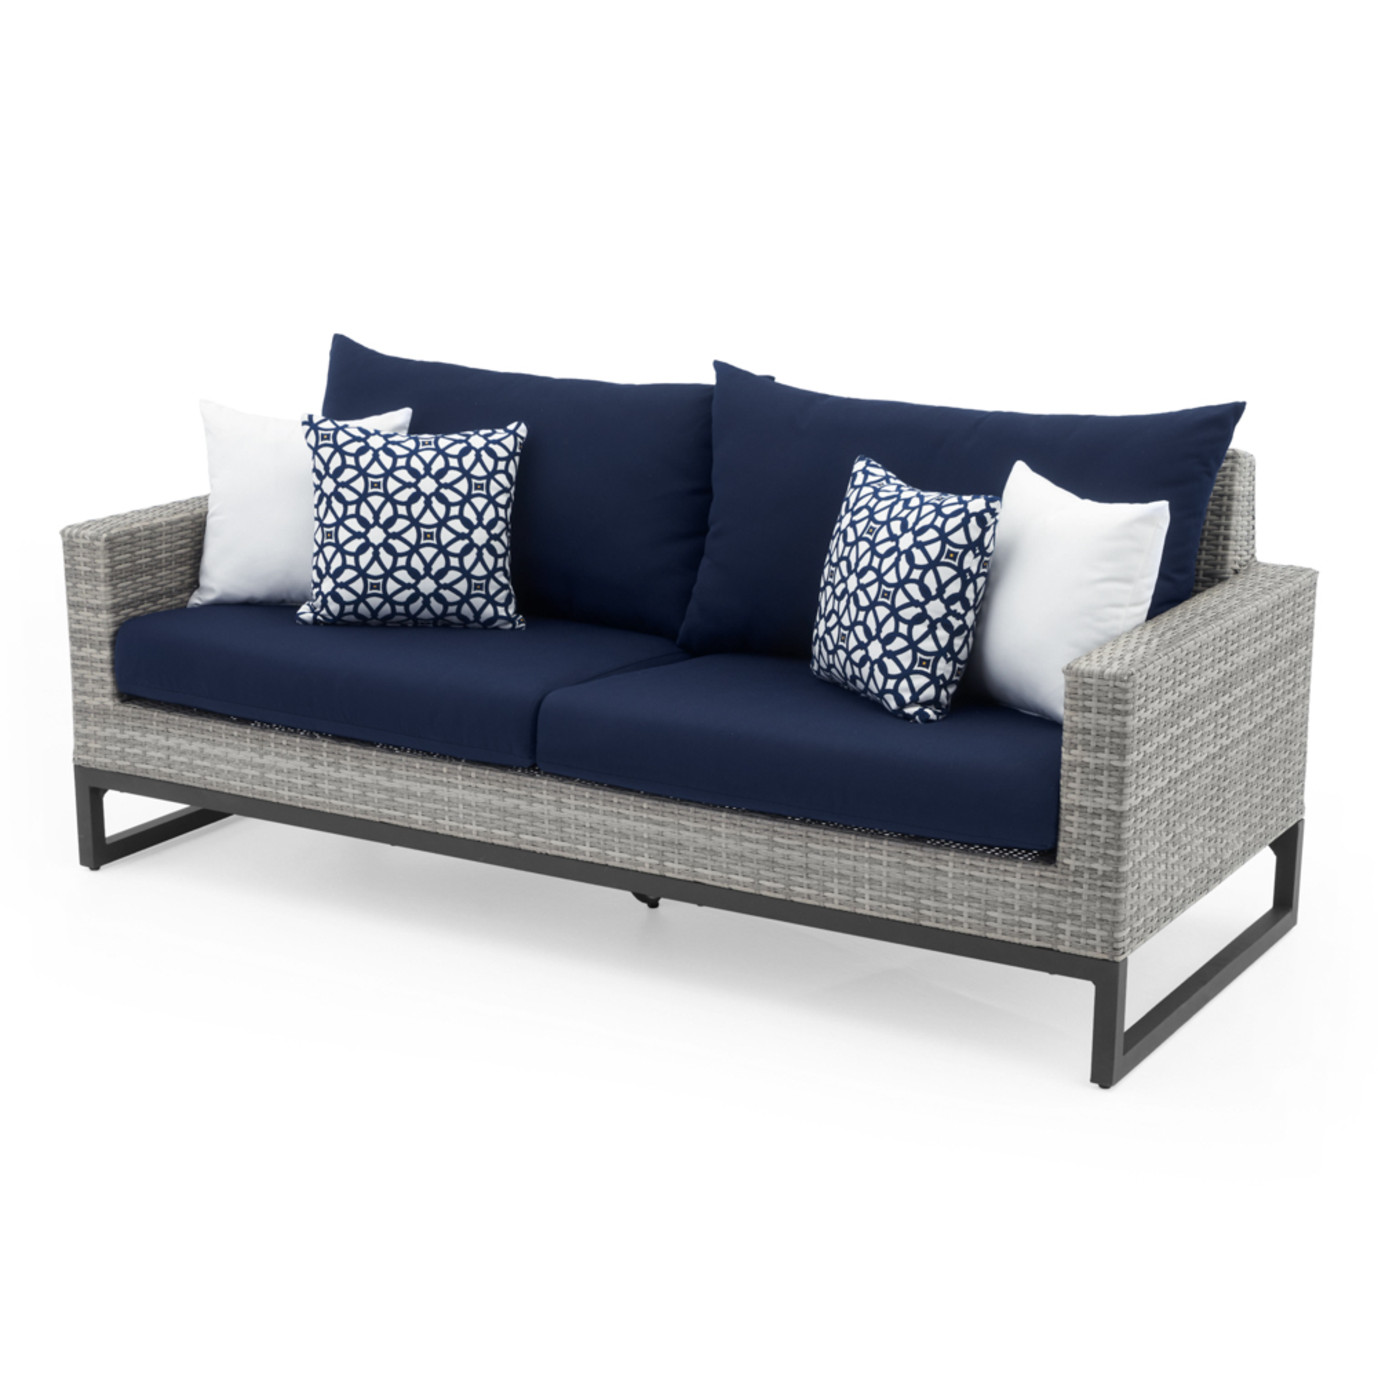 Milo™ Gray 78in Sofa - Navy Blue